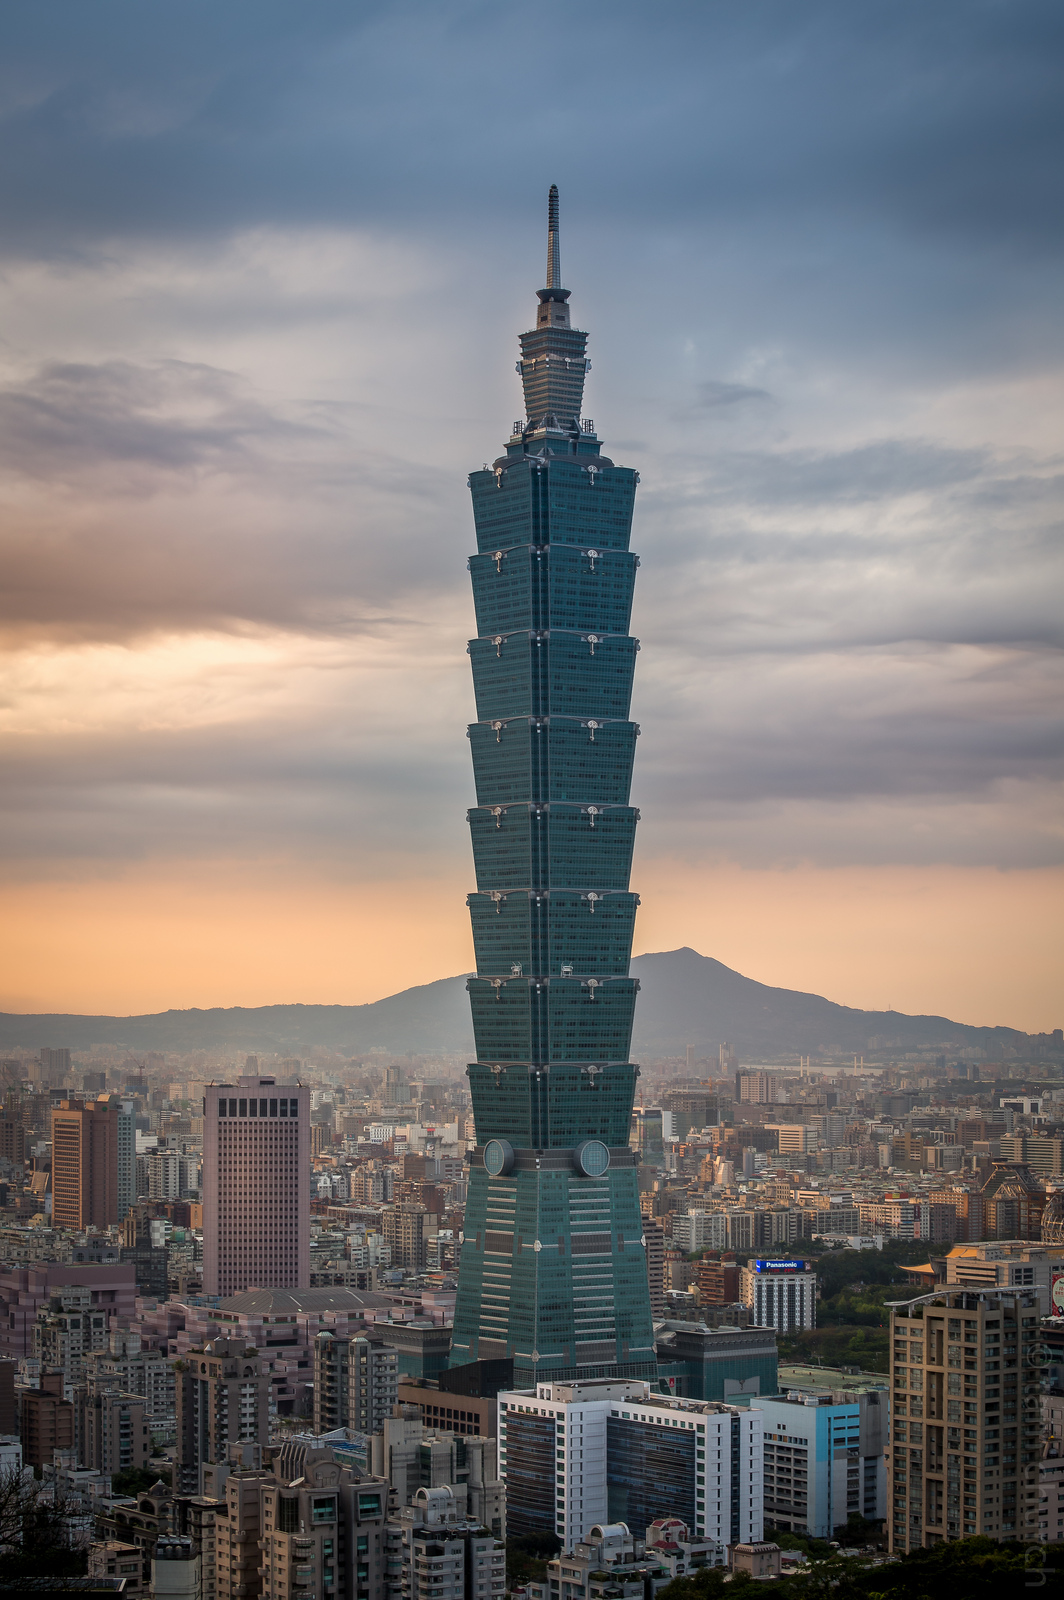 google map location with Taipei 101 on Rdo equipment  pany moreover File Marshall Point Lighthouse by Sunset besides R C3 A5dhuset Metro Station in addition File Celest C3 BAn  Yucat C3 A1n  05 additionally Saint Symphorien Sur Coise.